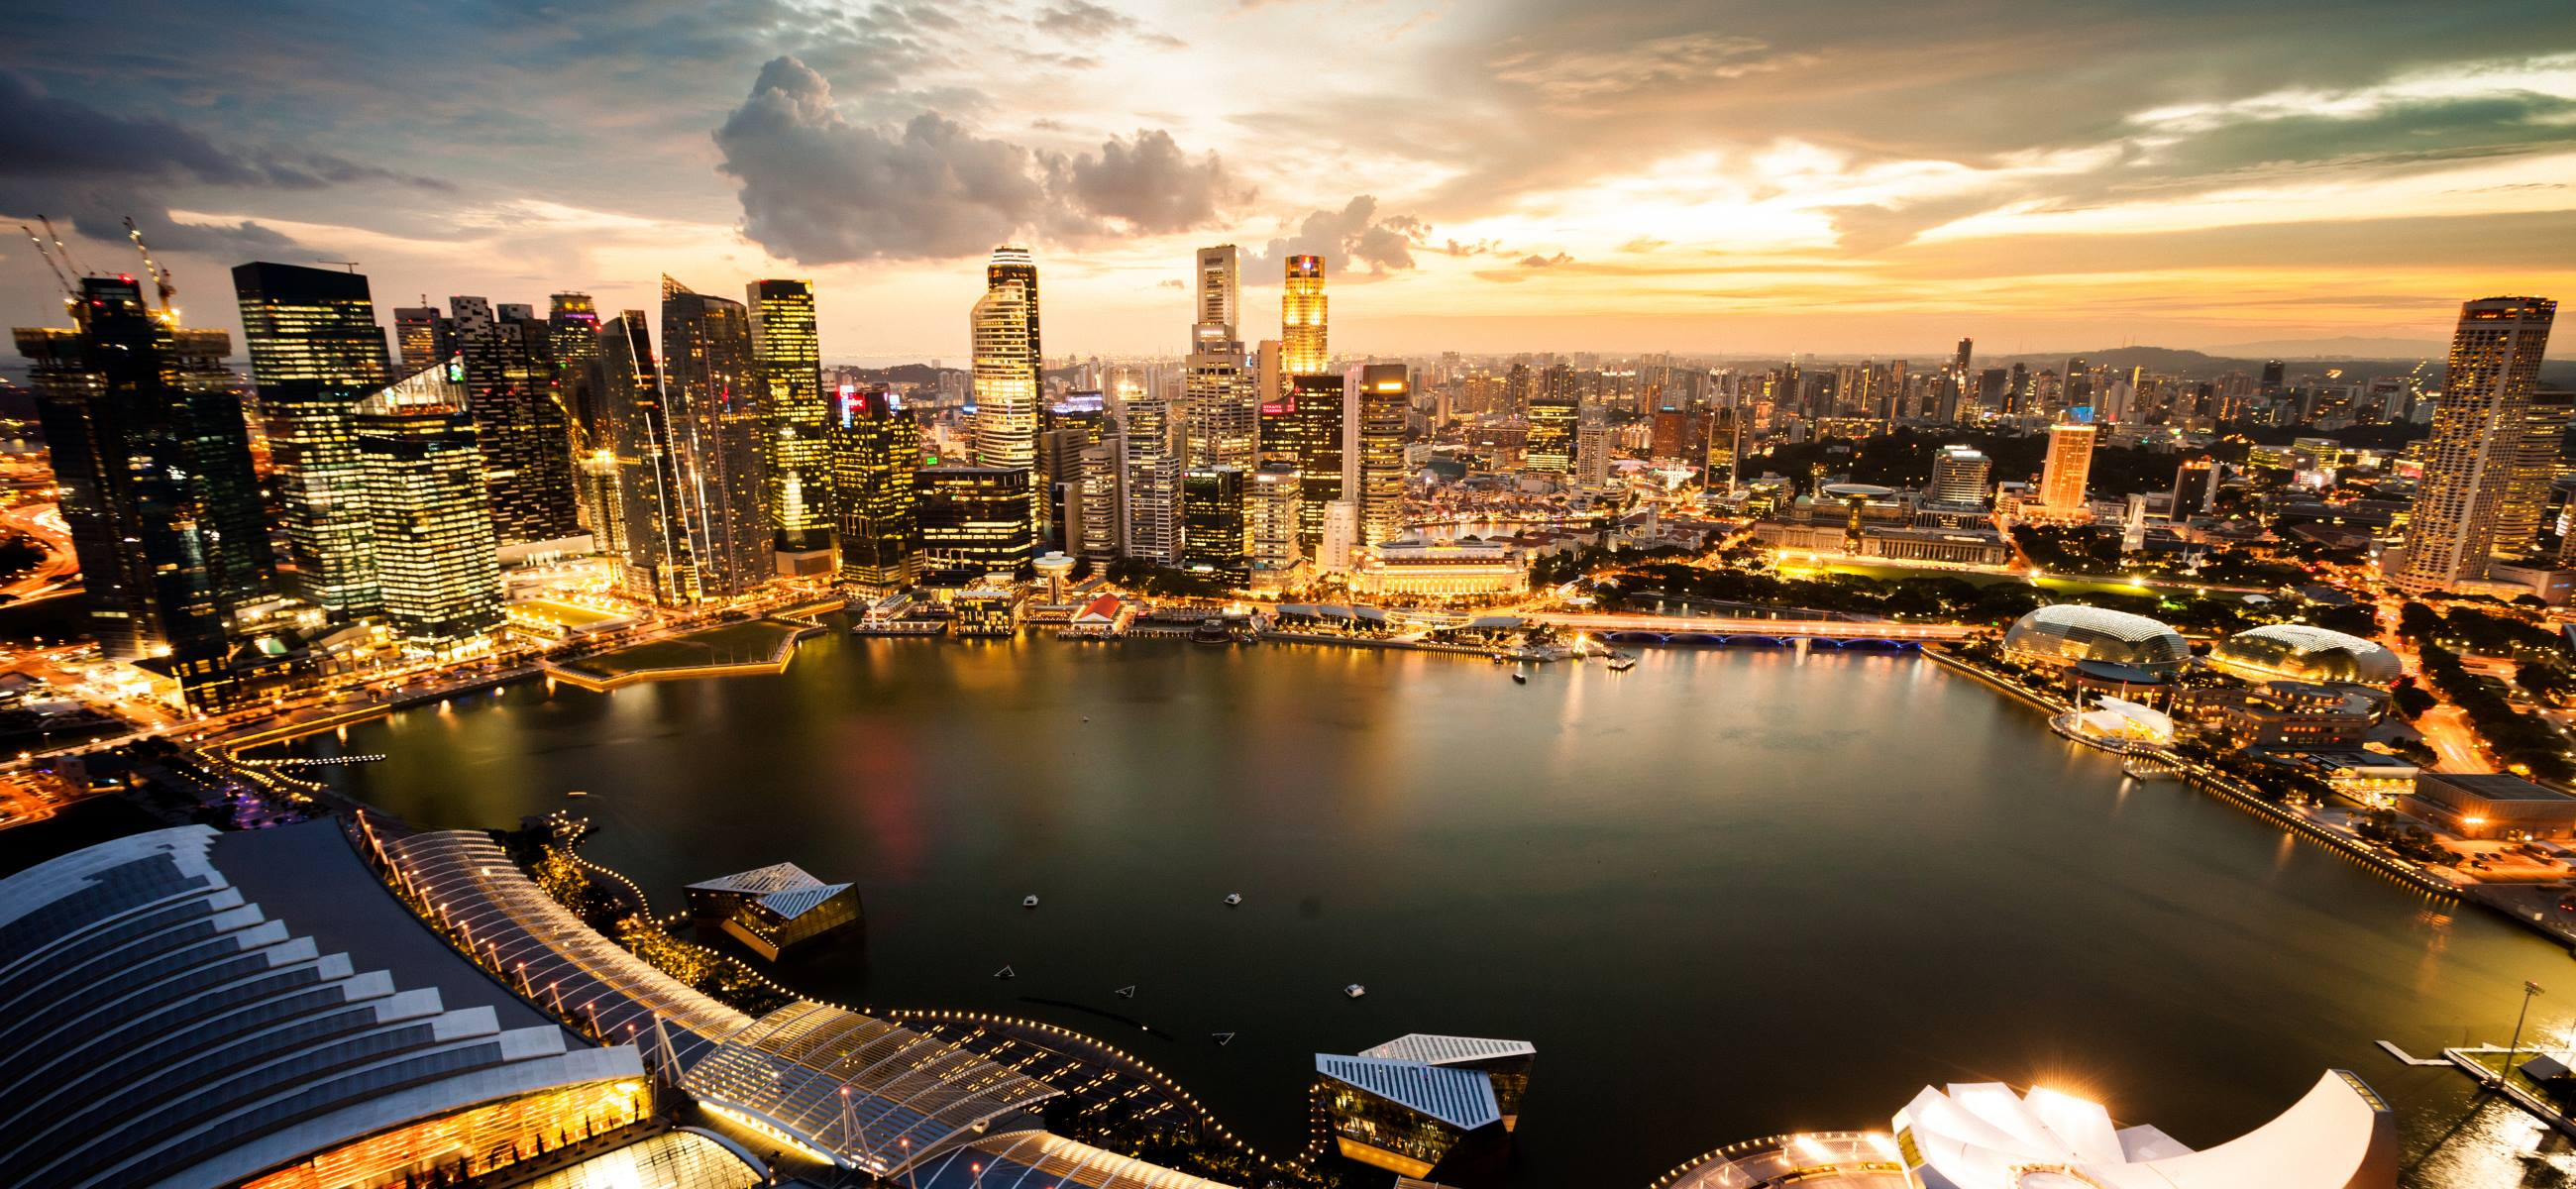 The-Do's-And-Don'ts-When-It-Comes-To-Visiting-Singapore